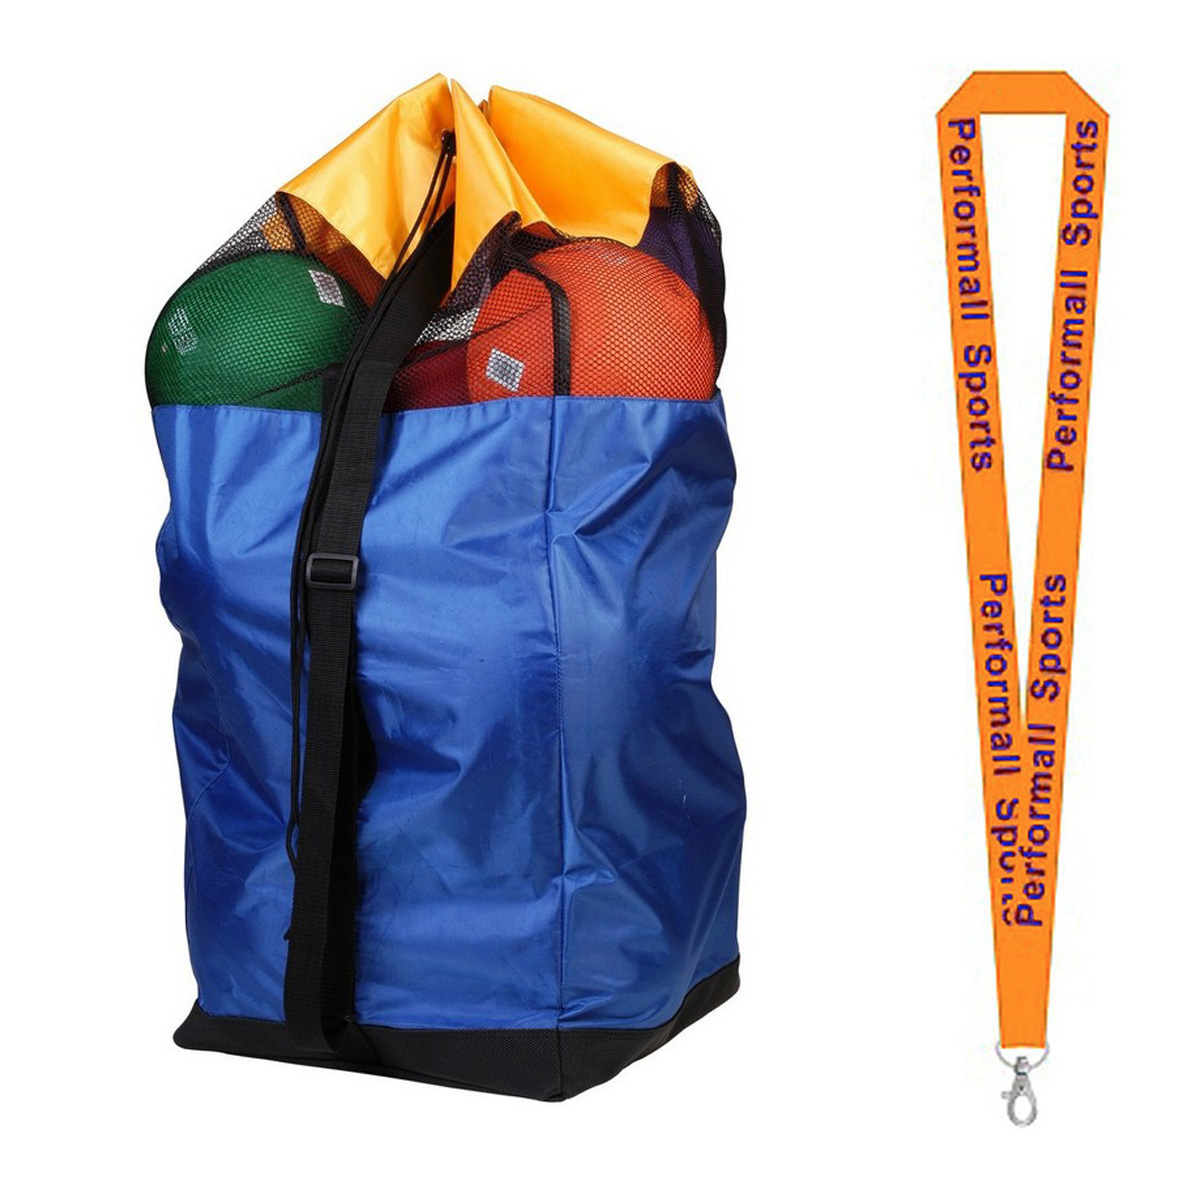 Champion Sports Bundle: Basketball Duffle Bag Royal / Black / Yellow   1 Performall Lanyard BK4115-1P